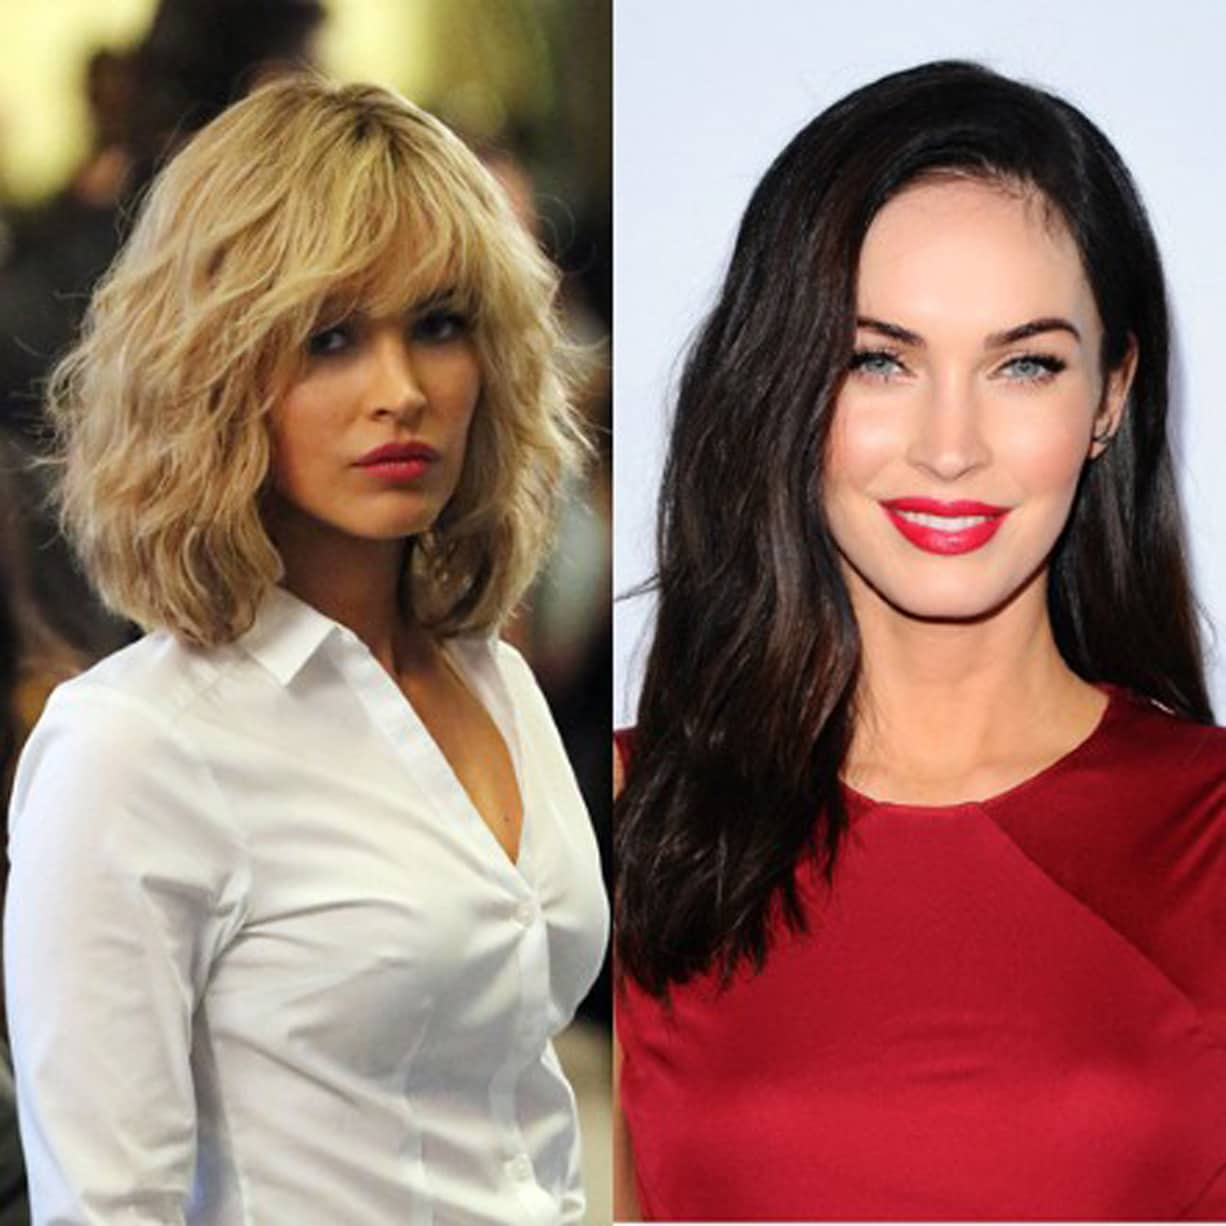 Megan Fox Celebrity Hair Blonde Vs Brunette Beauty